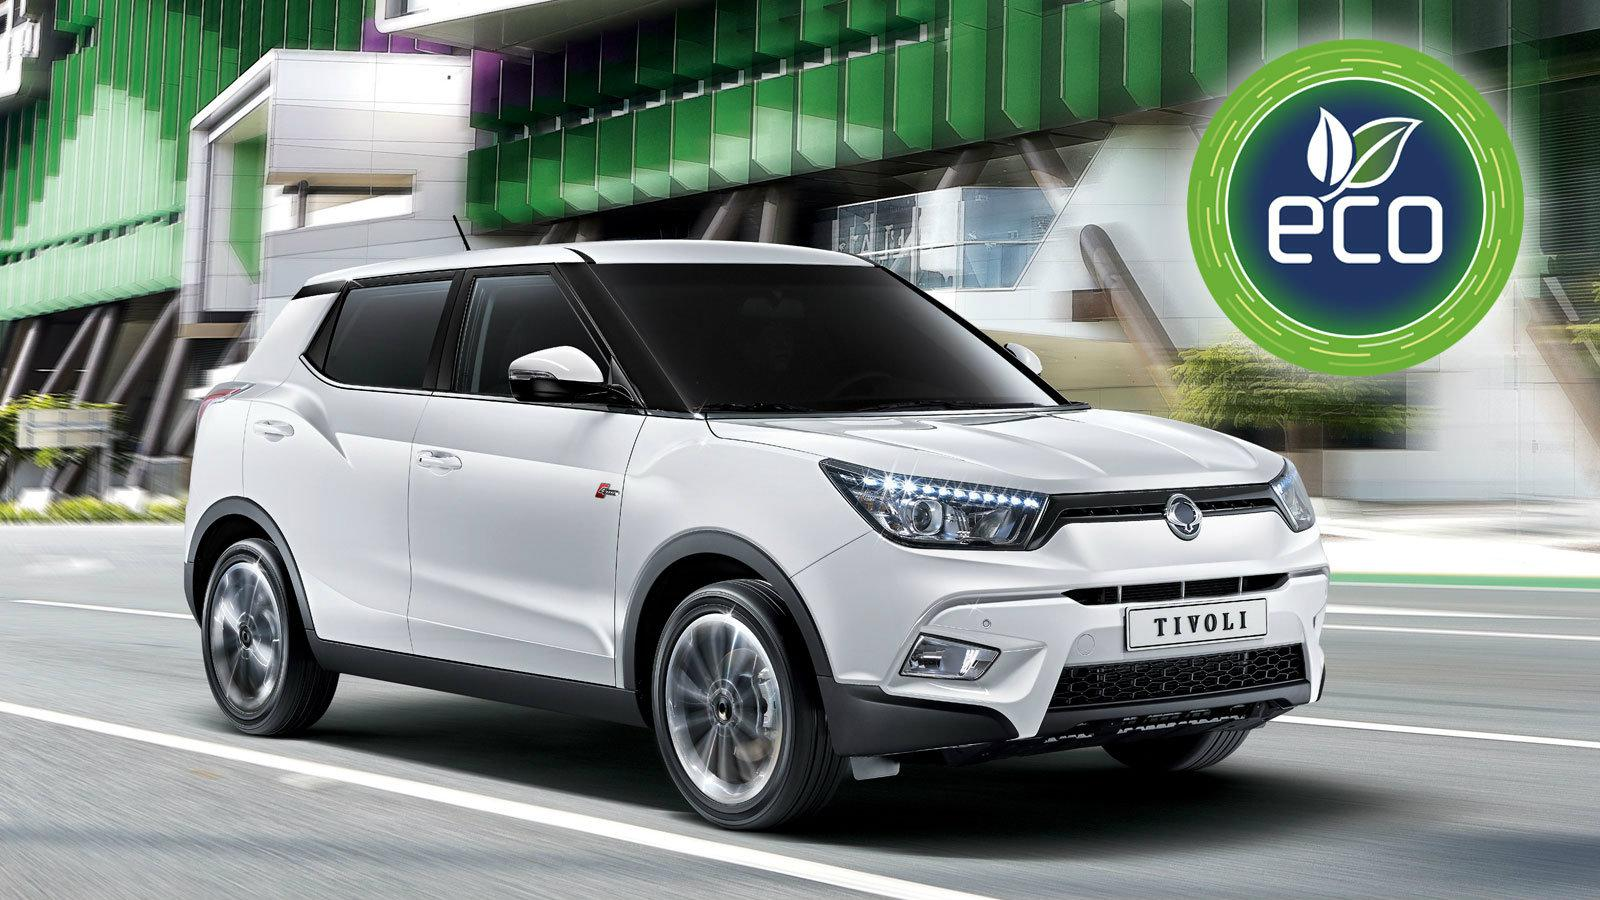 ssangyong tivoli xlv eco ssangyong tivoli. Black Bedroom Furniture Sets. Home Design Ideas